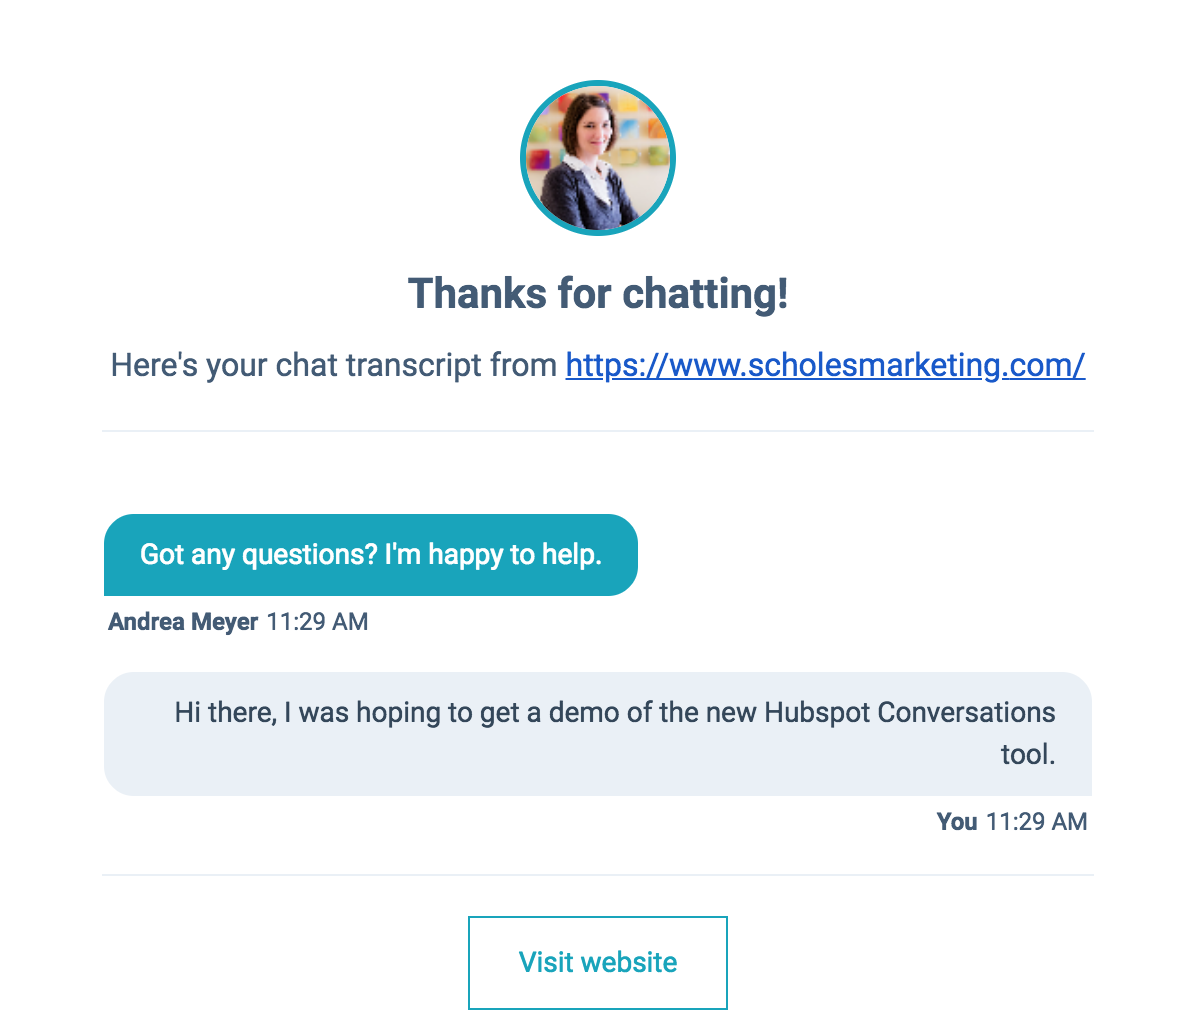 Chat summary offered by HubSpot Conversations